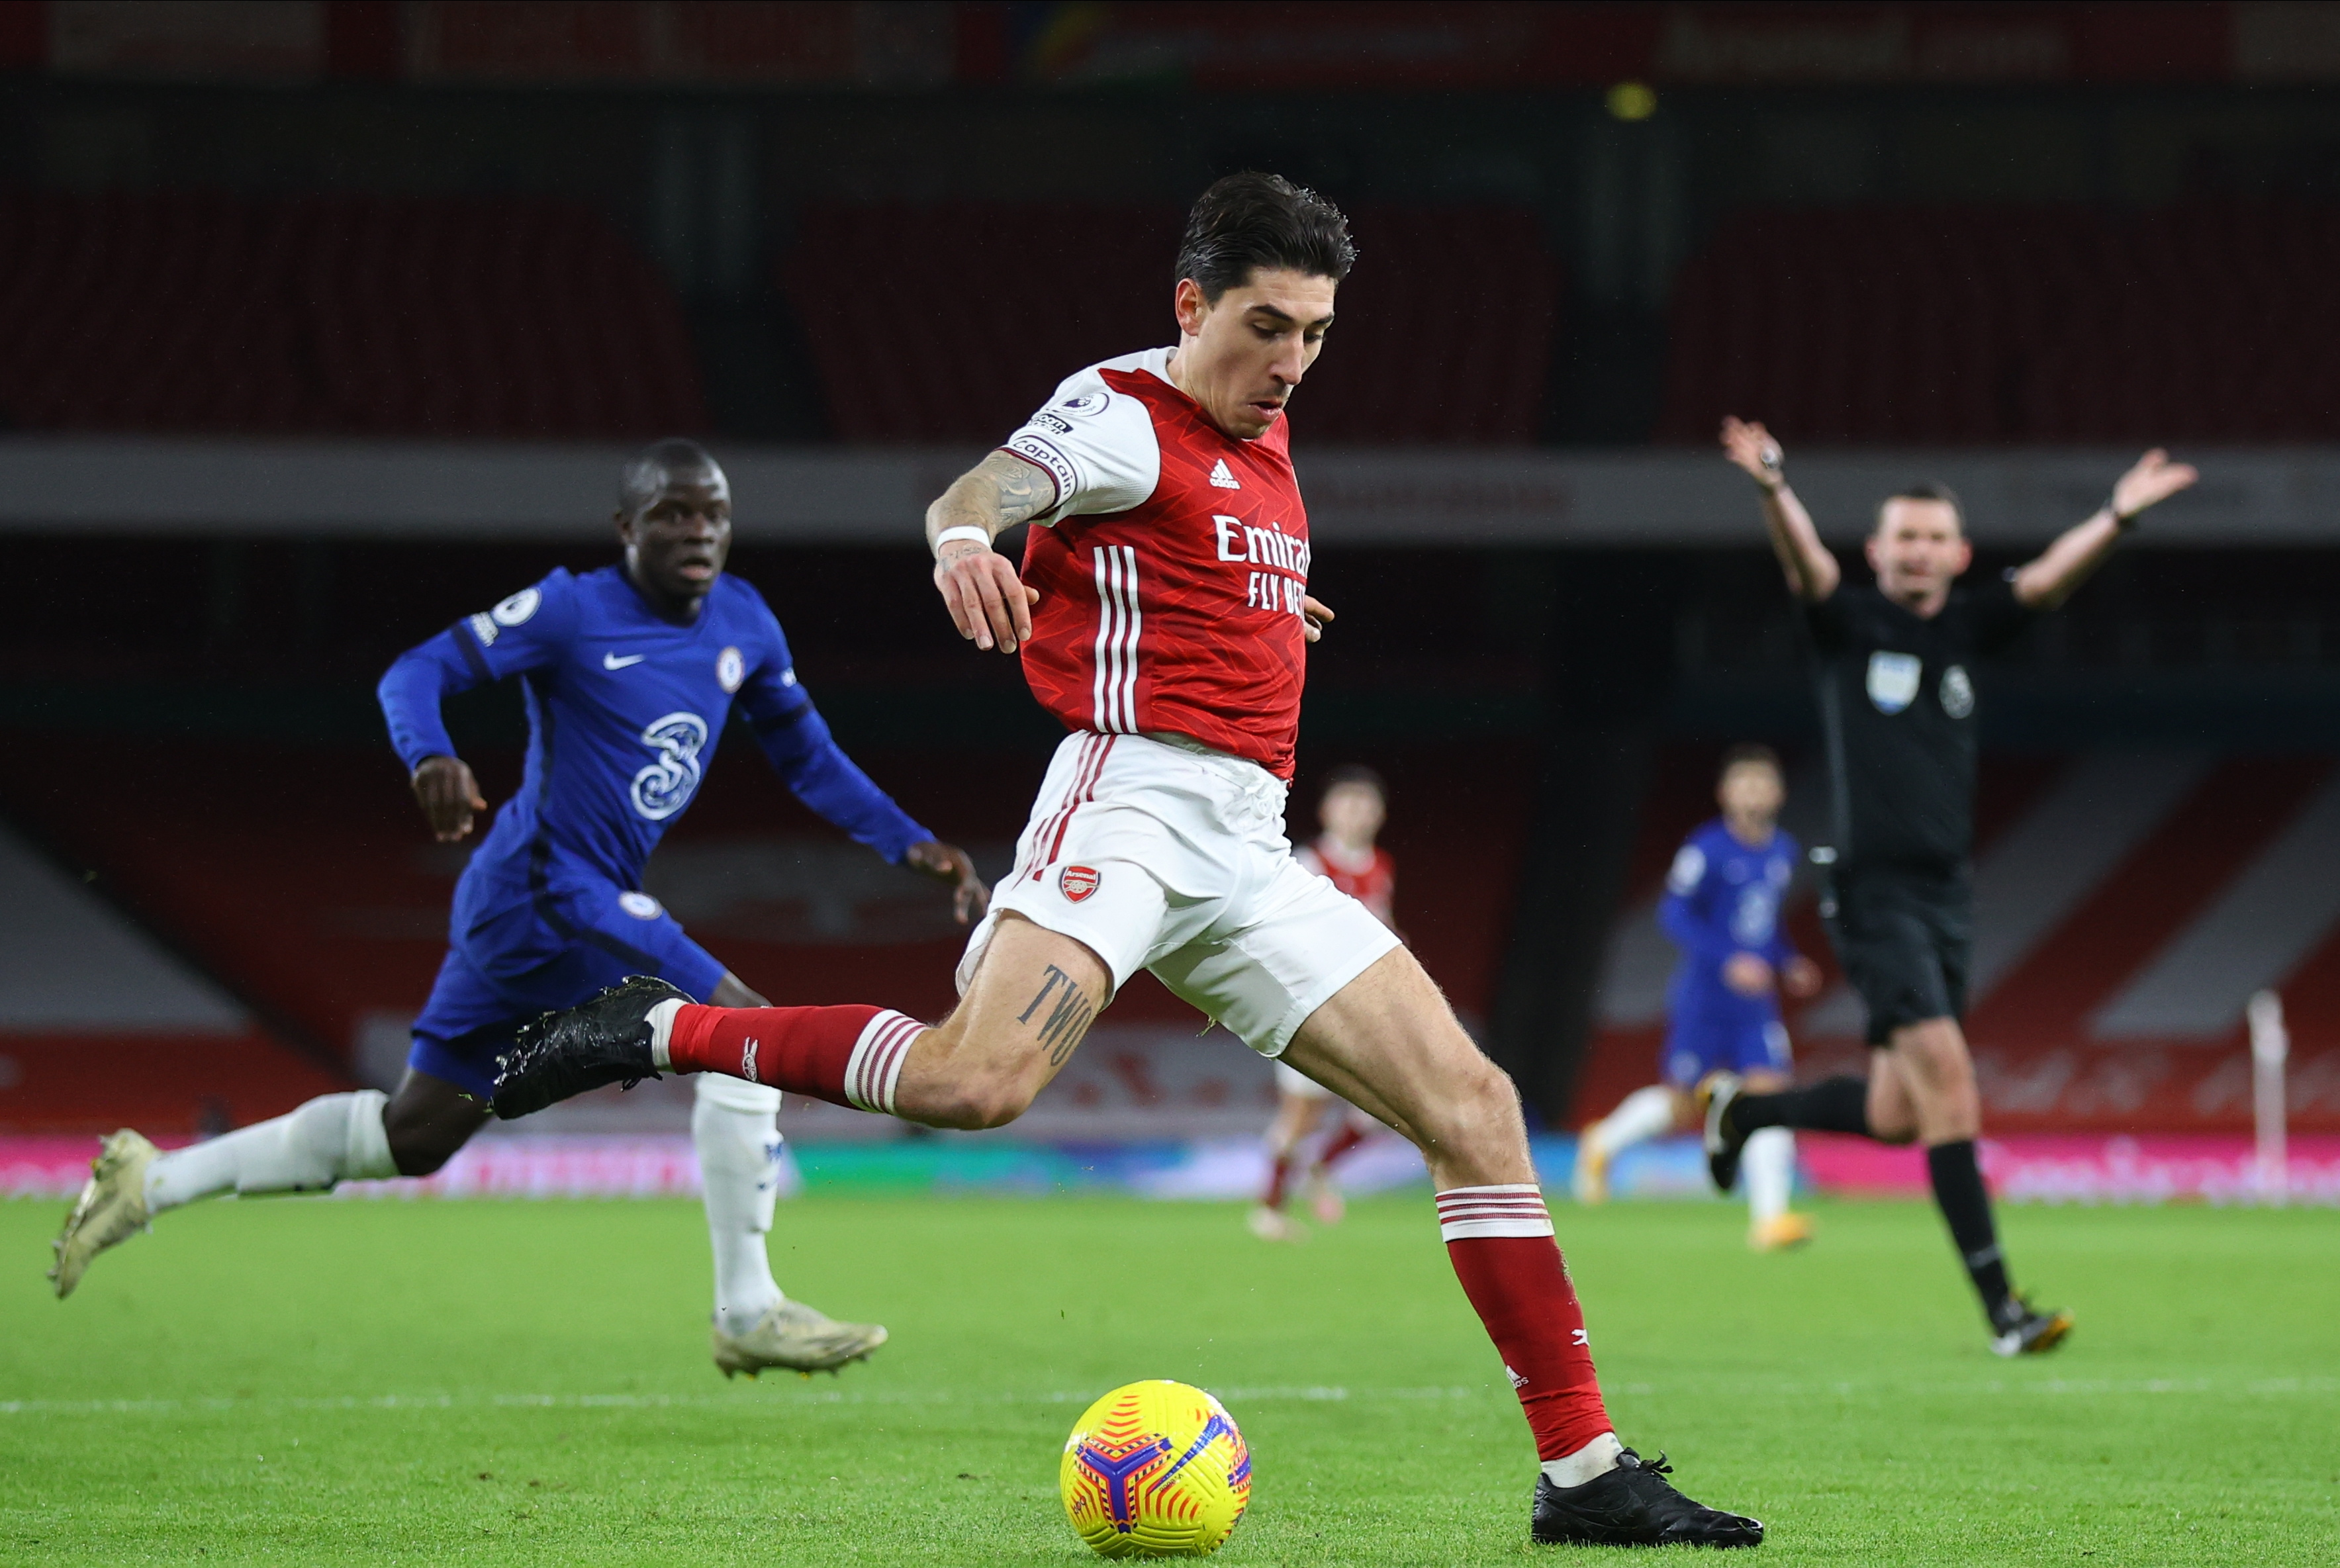 The Gunners may be forced into a fight with Barcelona over Hector Bellerin